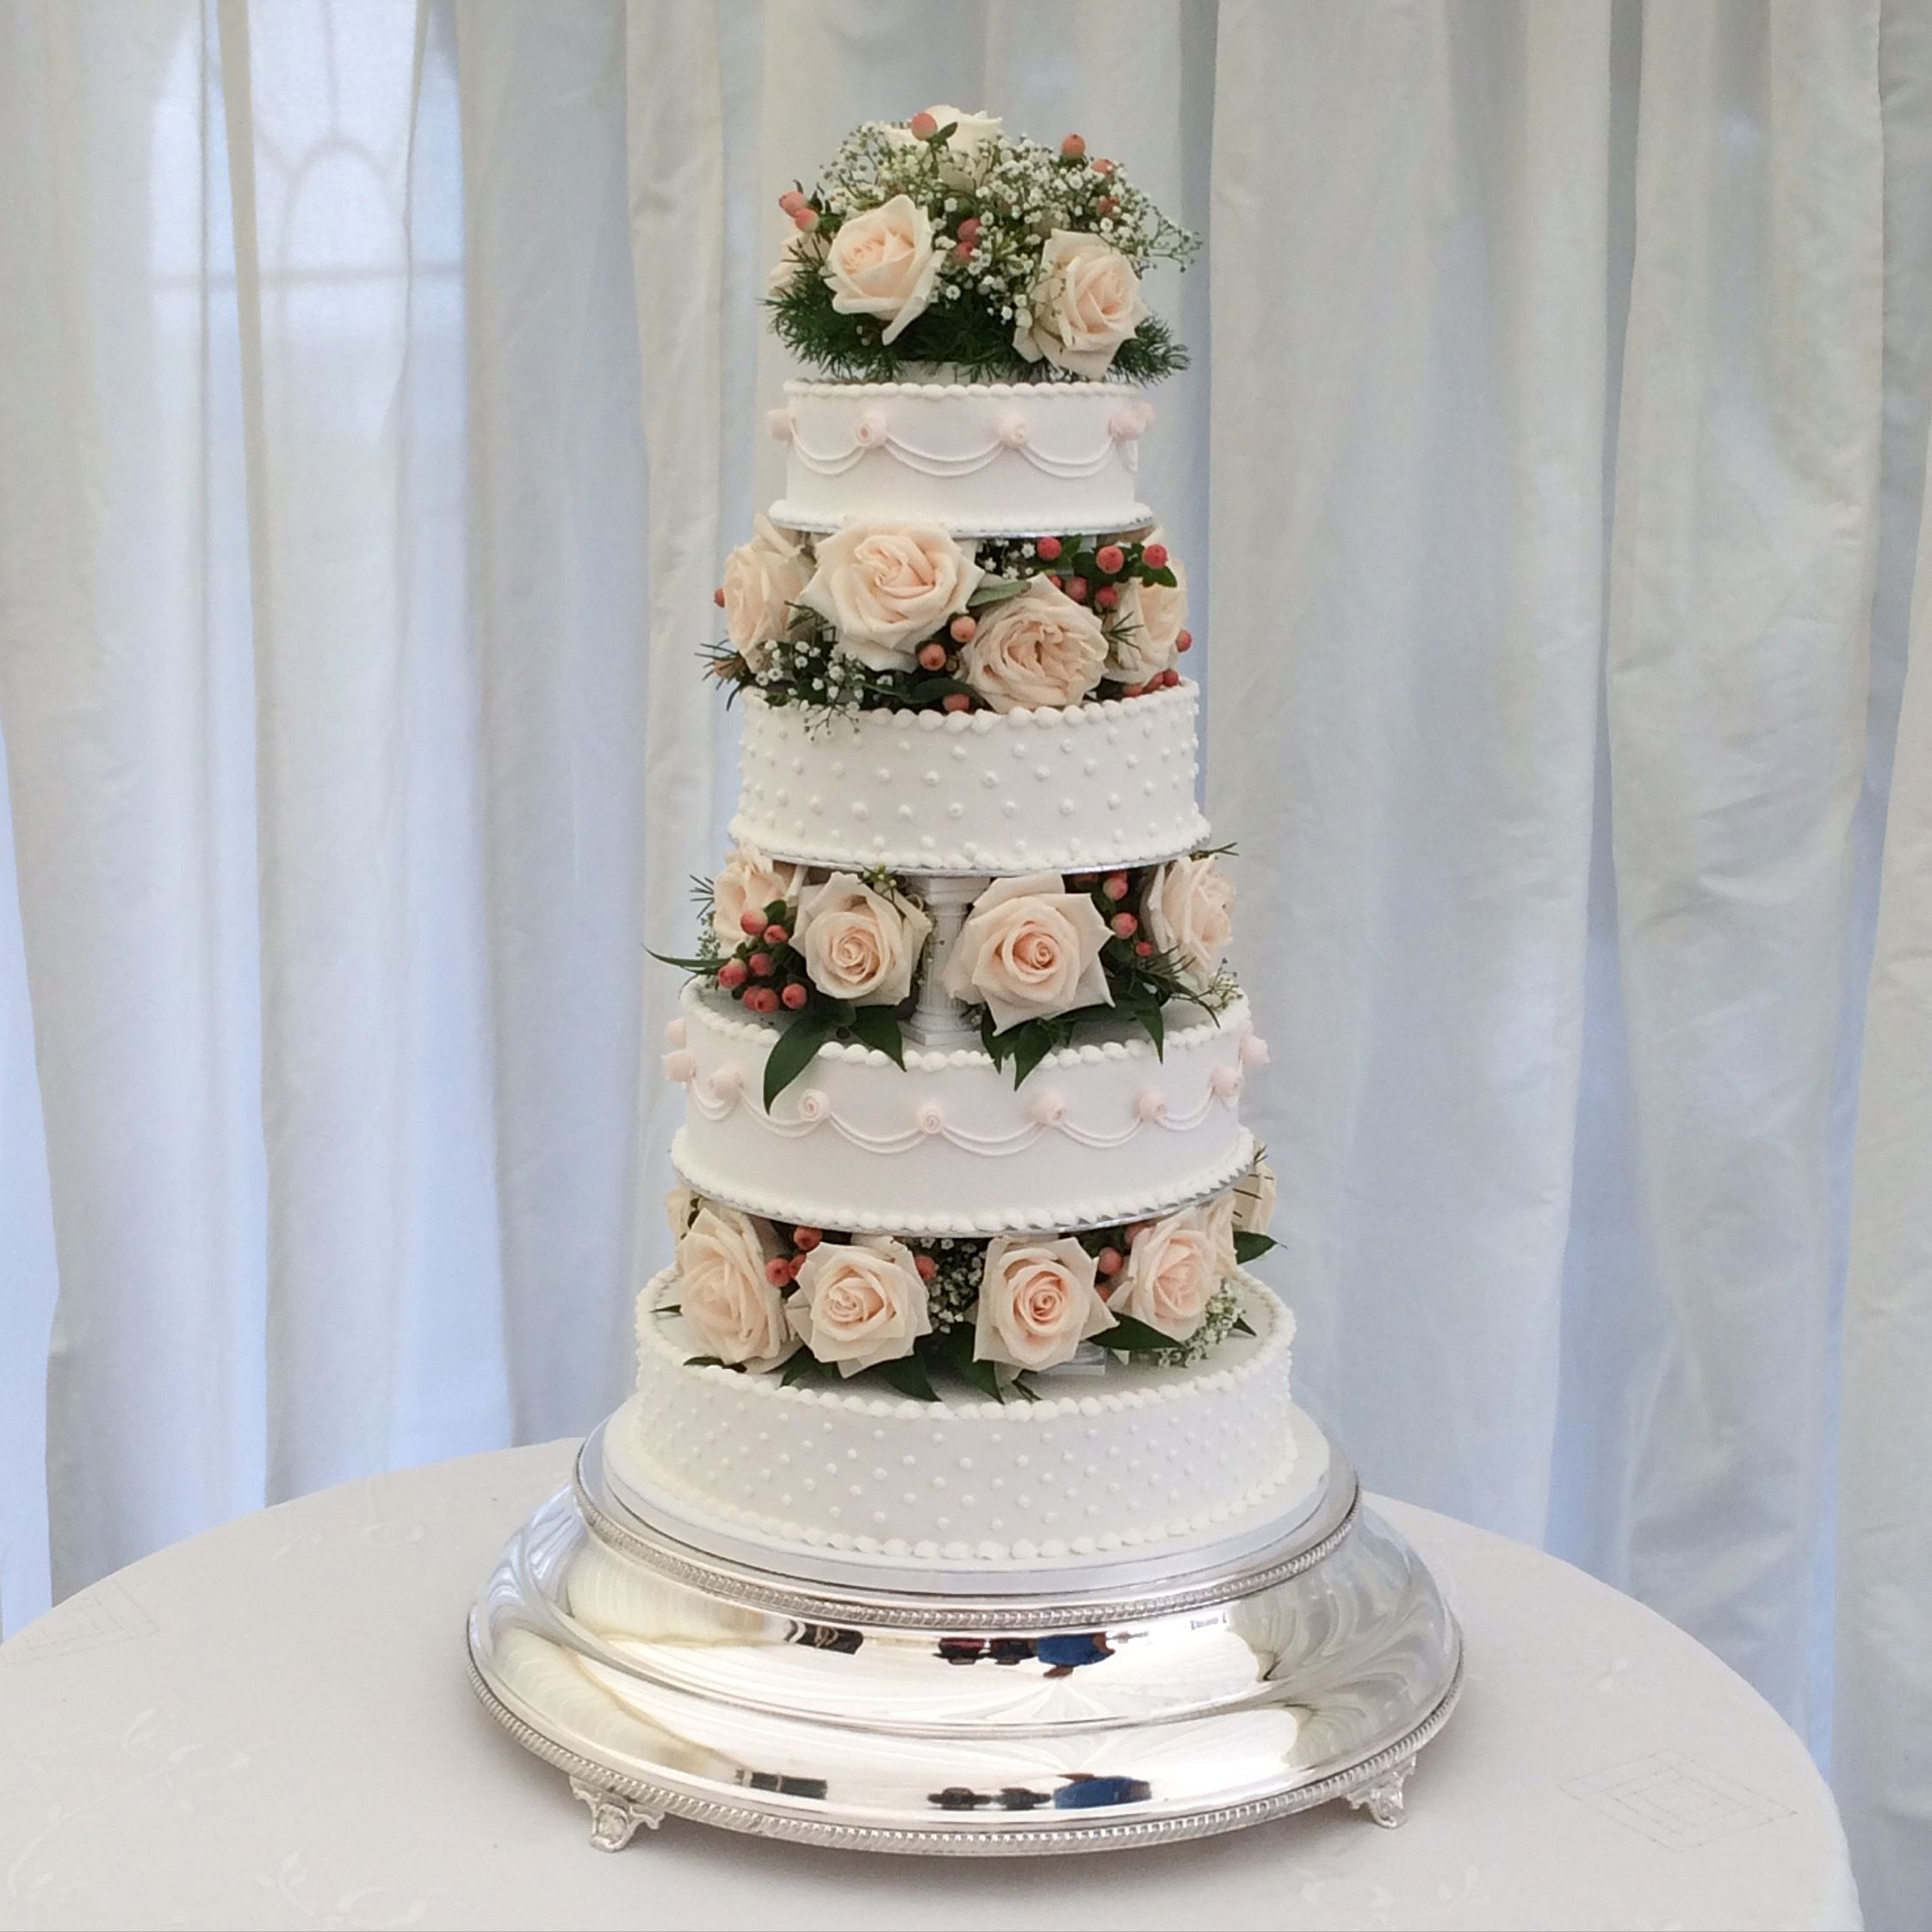 The wedding cake at the venue with fresh flowers between each layer ...